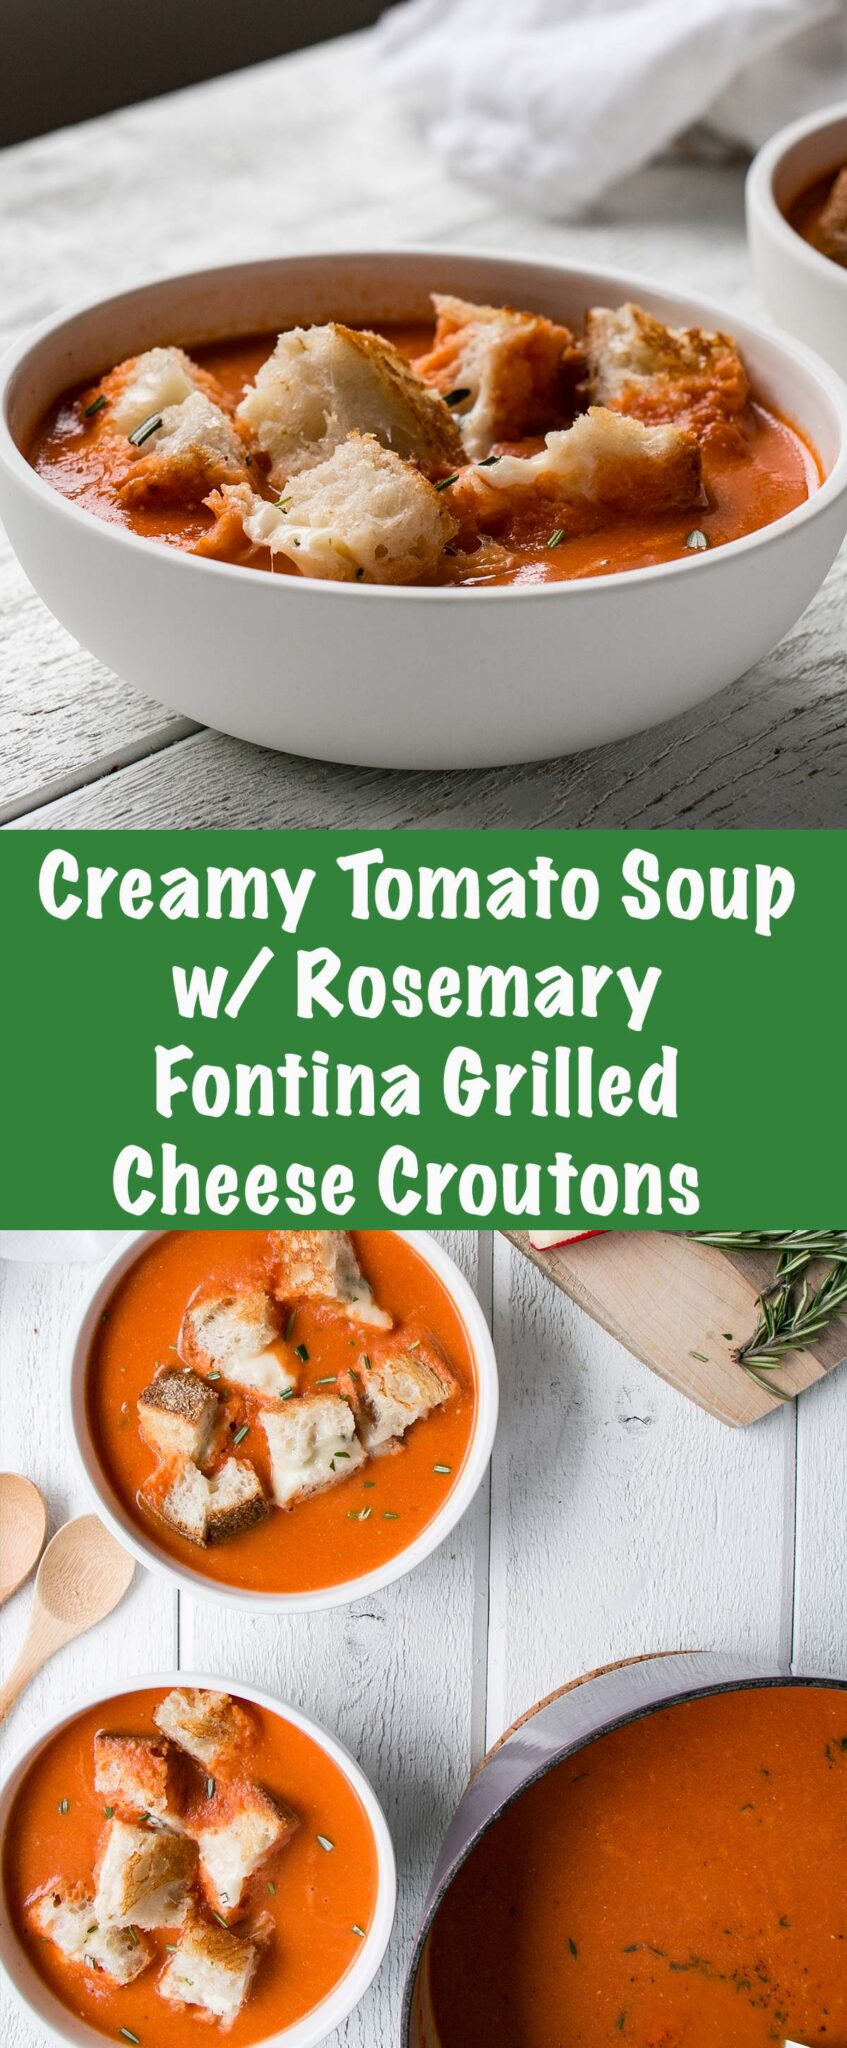 Creamy Tomato Soup with Rosemary Fontina Grilled Cheese for a cozy soup and grilled cheese experience. #comfortfood #soup #grilledcheese